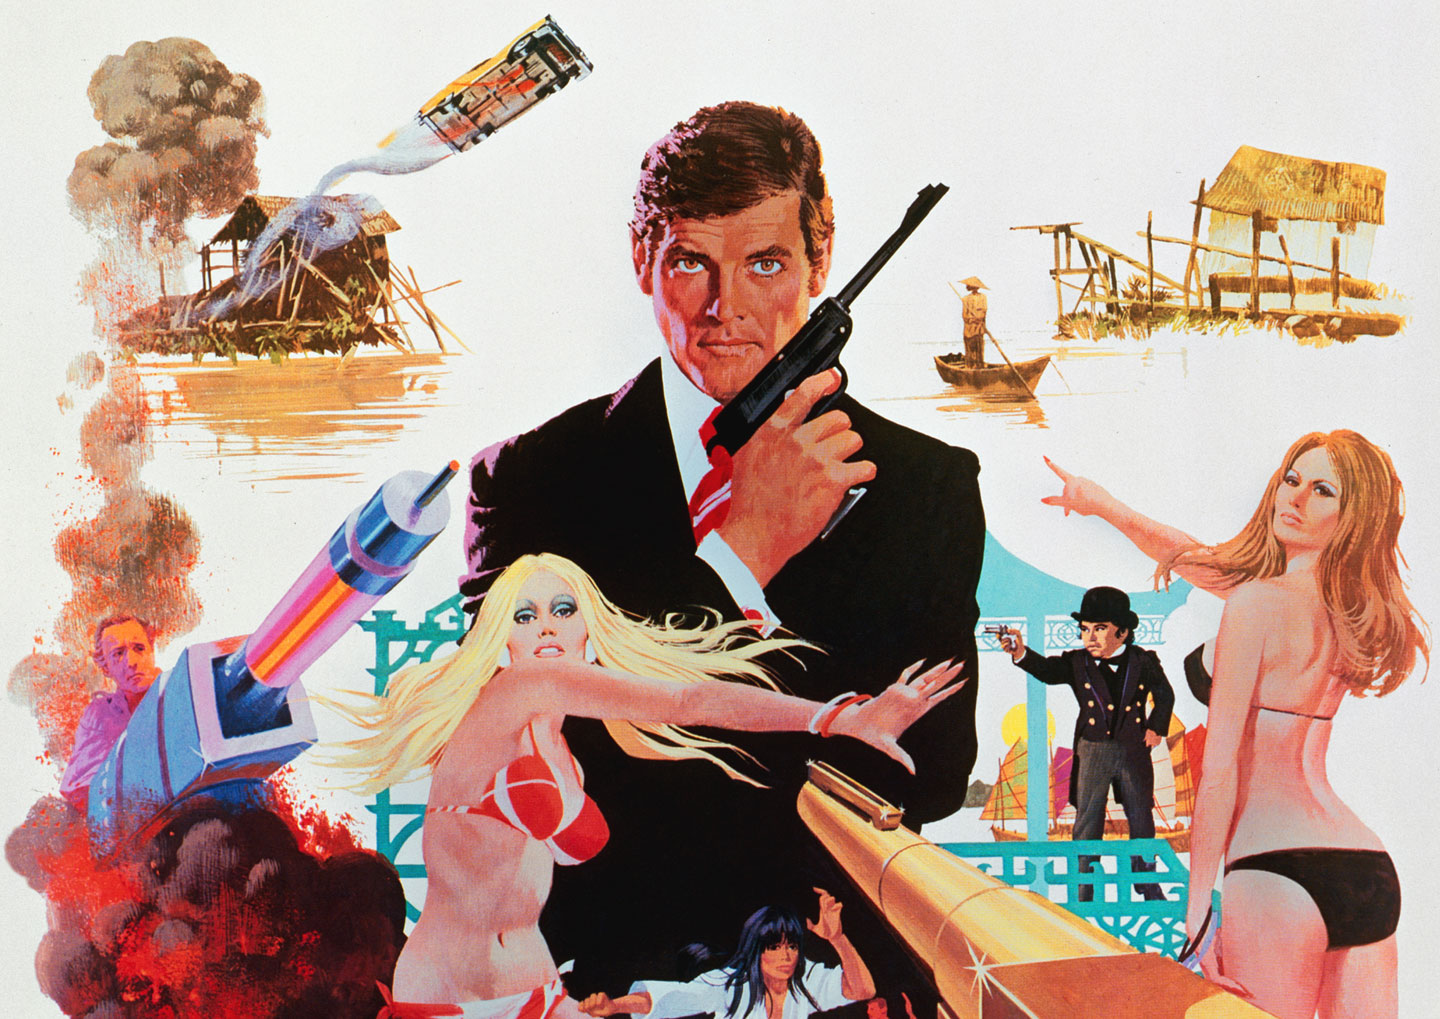 The Man With The Golden Gun header image